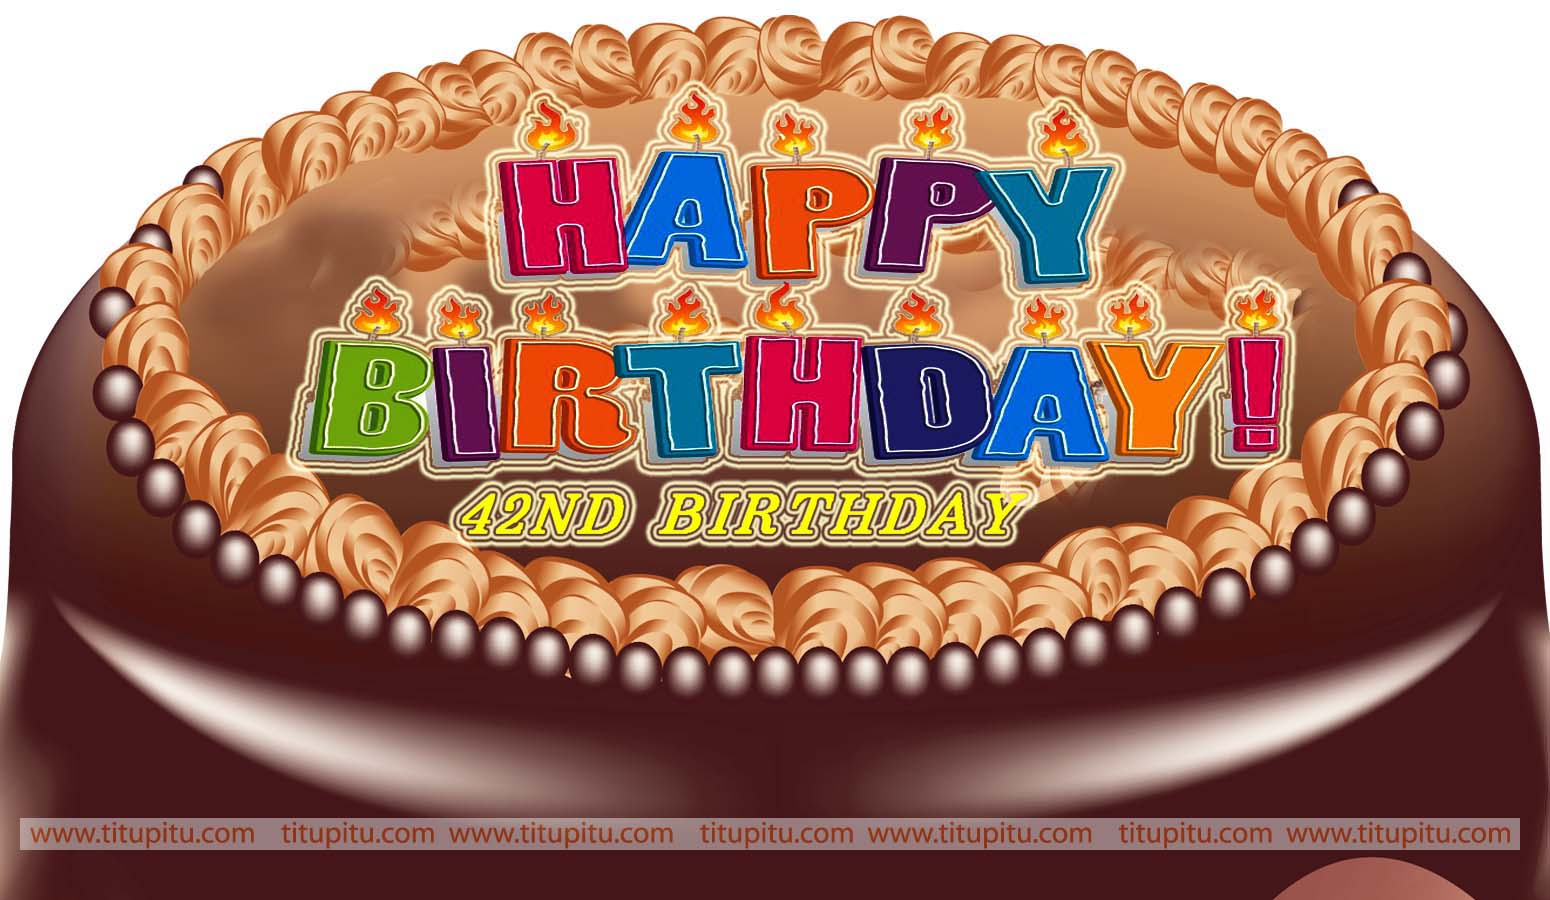 Birthday Cake Images And Msg : Wishes message and wallpaper for 42nd birthday Haryanvi ...